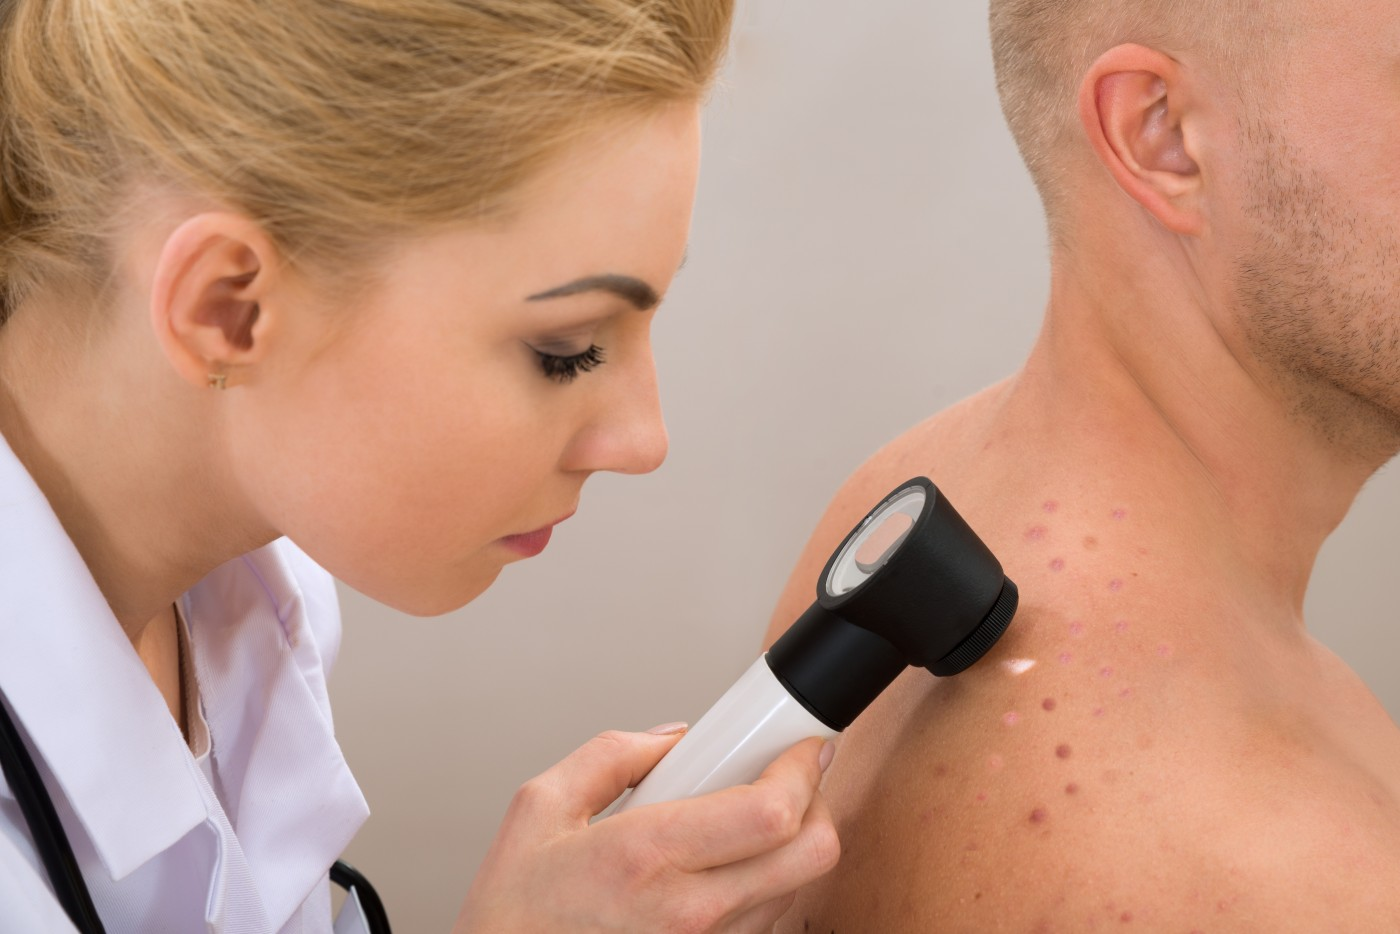 Diagnosing Melanoma Appears More Accurate Using New Test Compared to Traditional Method, Study Finds